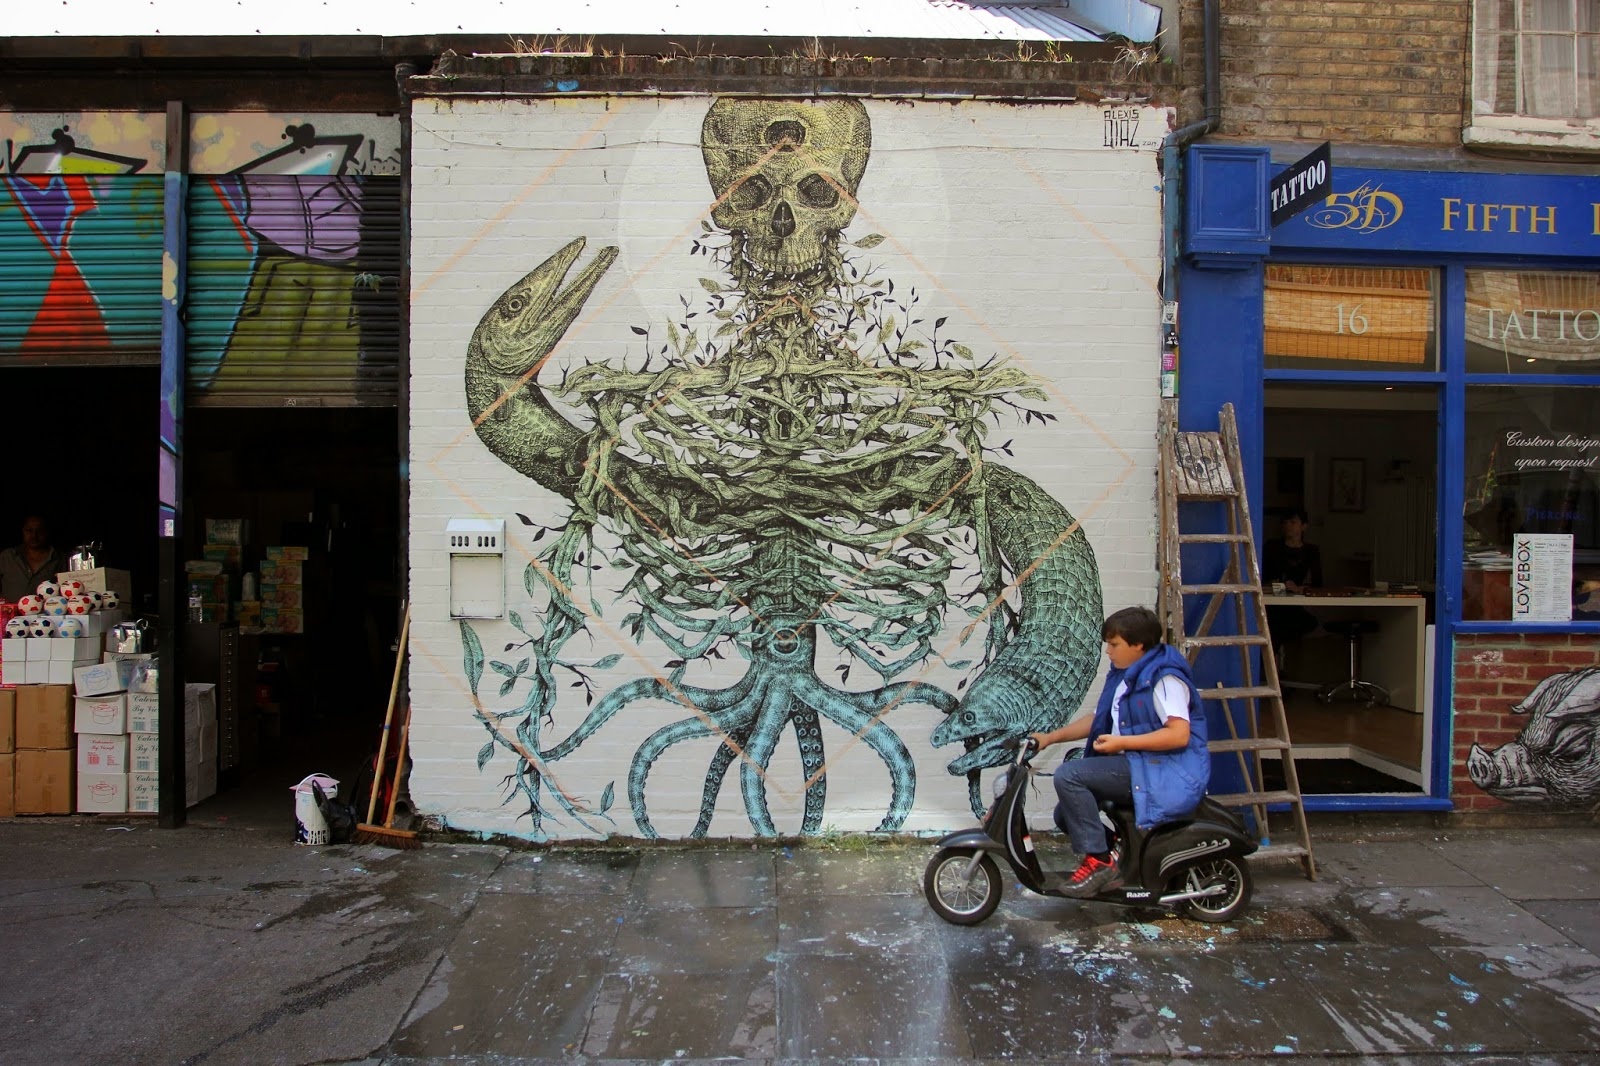 Alexis Diaz is back in the United Kingdom where he spent the last few days working on this new piece on the streets of East London.